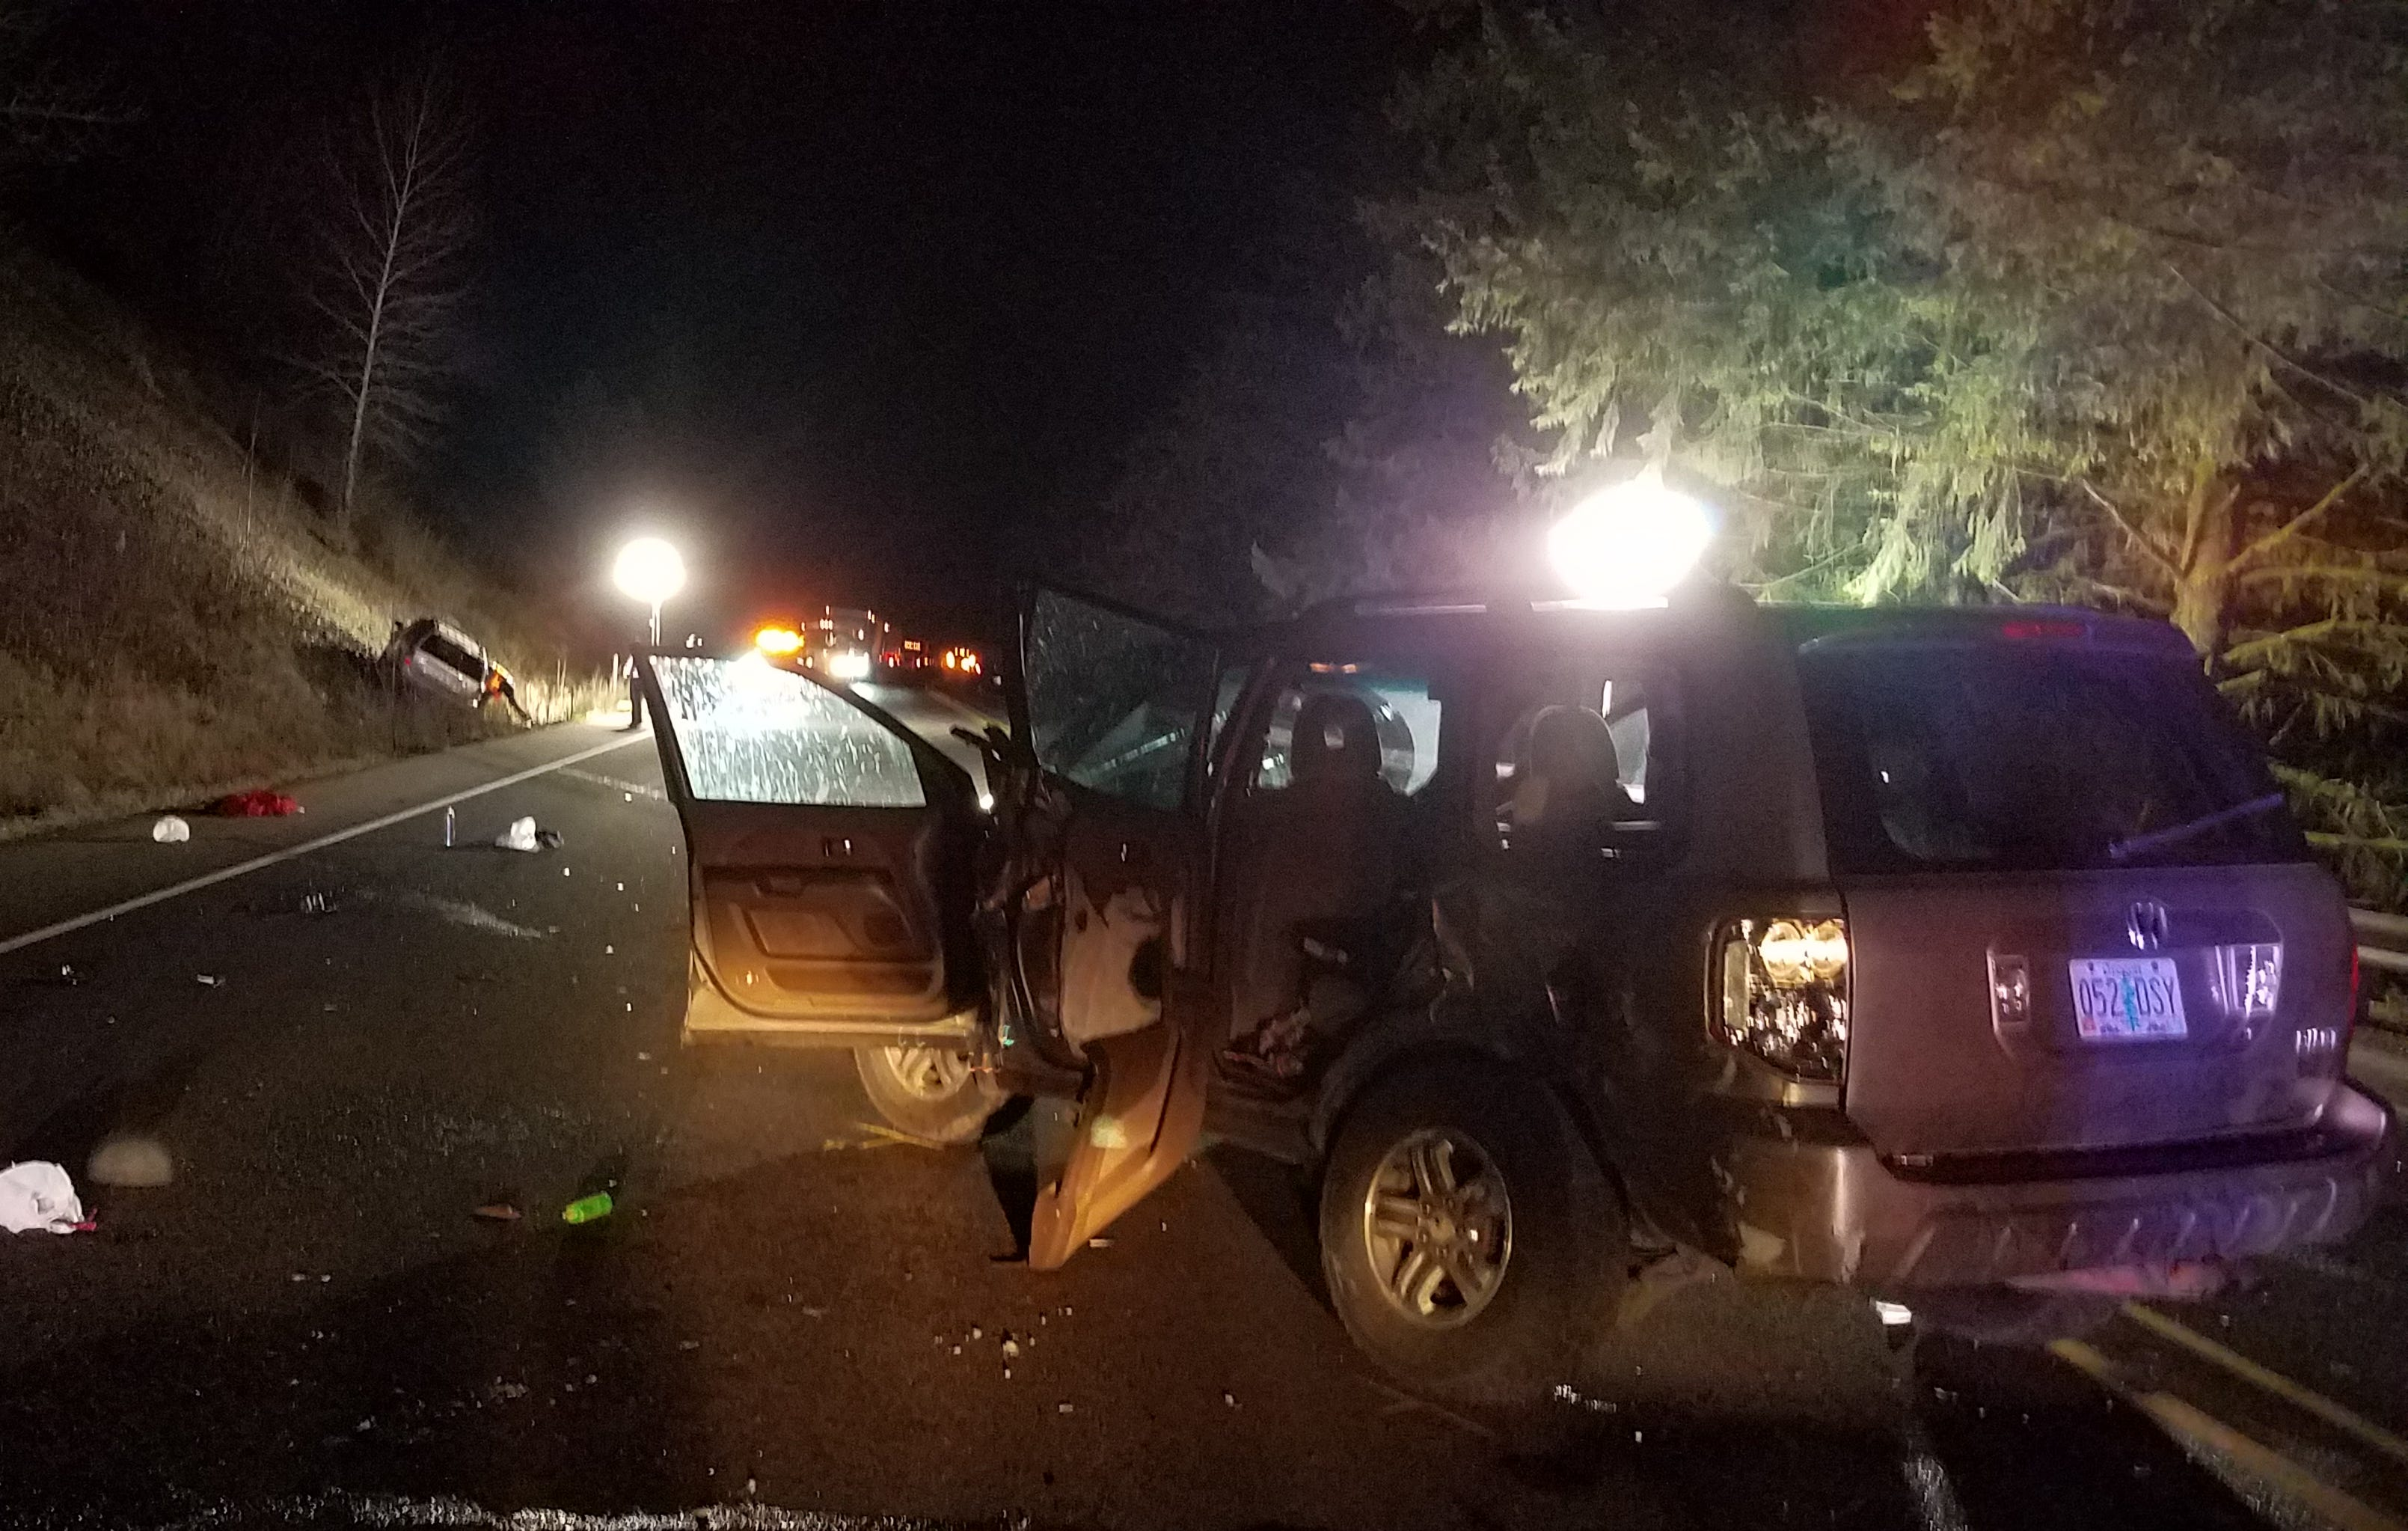 A child was taken to a hospital after a crash on Highway 22 Monday evening.